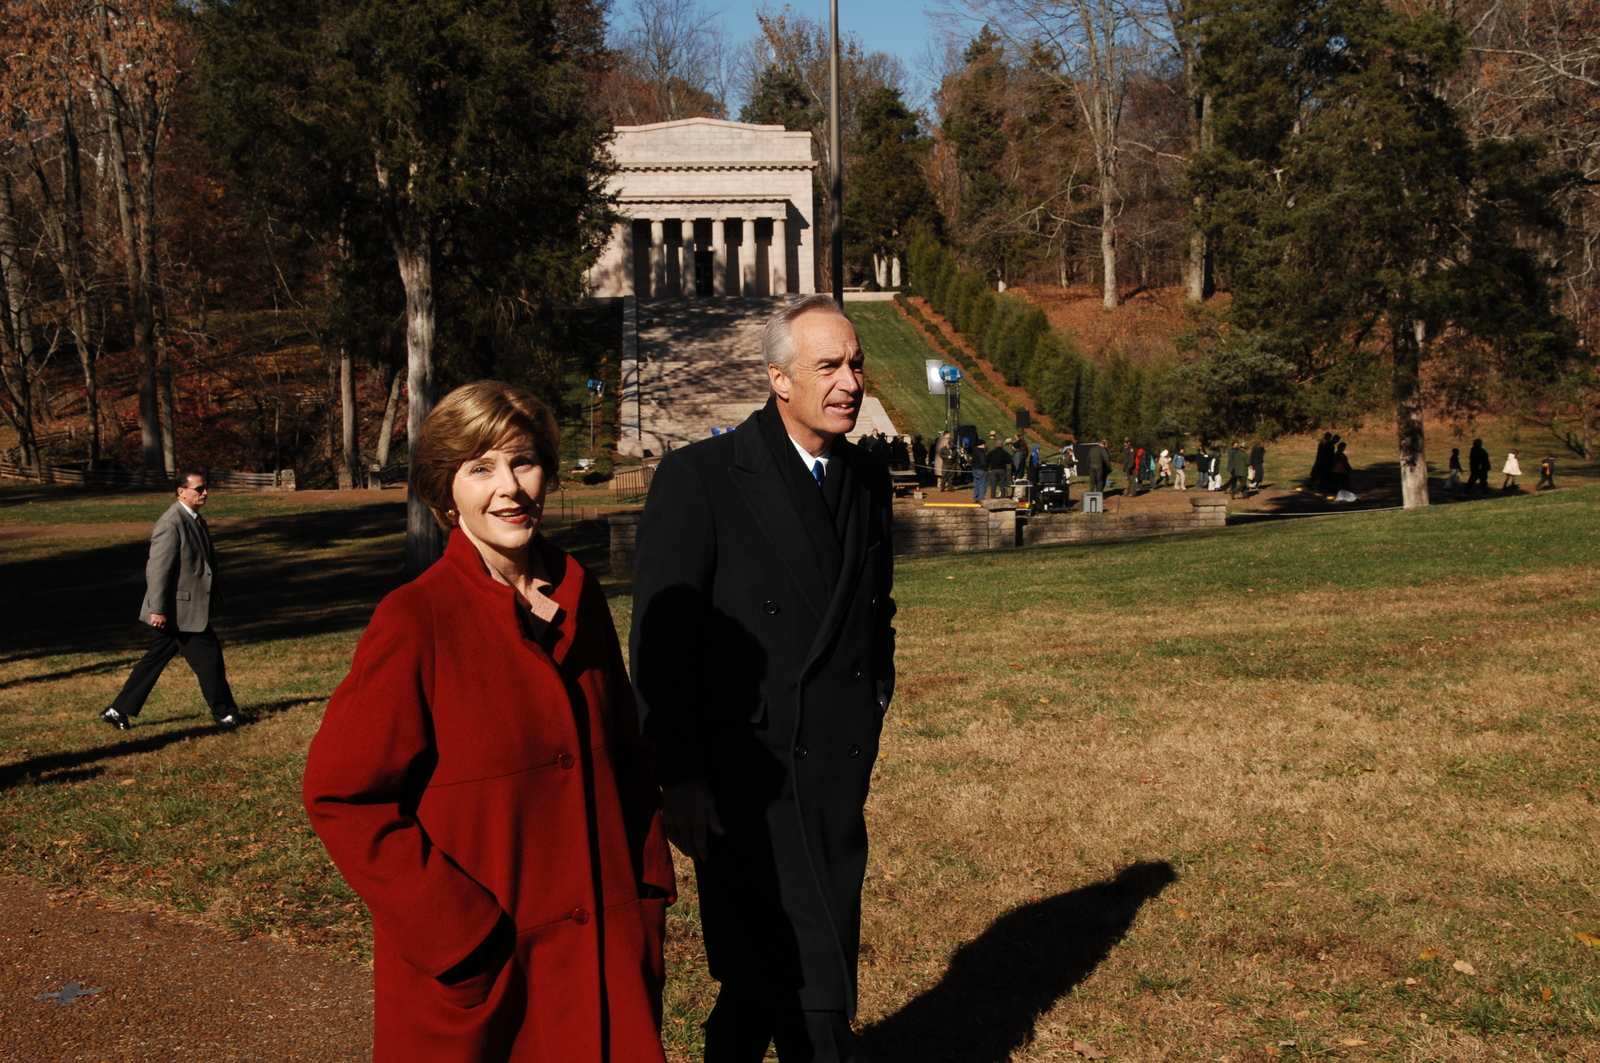 [Assignment: 48-DPA-11-18-08_SOI_K_FLOTUS] Visit of Secretary Dirk Kempthorne to the Abraham Lincoln Birthplace National Historic Site in Hodgenville, Kentucky, where he joined First Lady Laura Bush, [Historic Site Superintendent Keith Pruitt, and Libby O'Connell, Chief Historian of A and E Television's History Channel, for tours, remarks, interactions with National Park Service staff and visitors] [48-DPA-11-18-08_SOI_K_FLOTUS_IOD_8242.JPG]